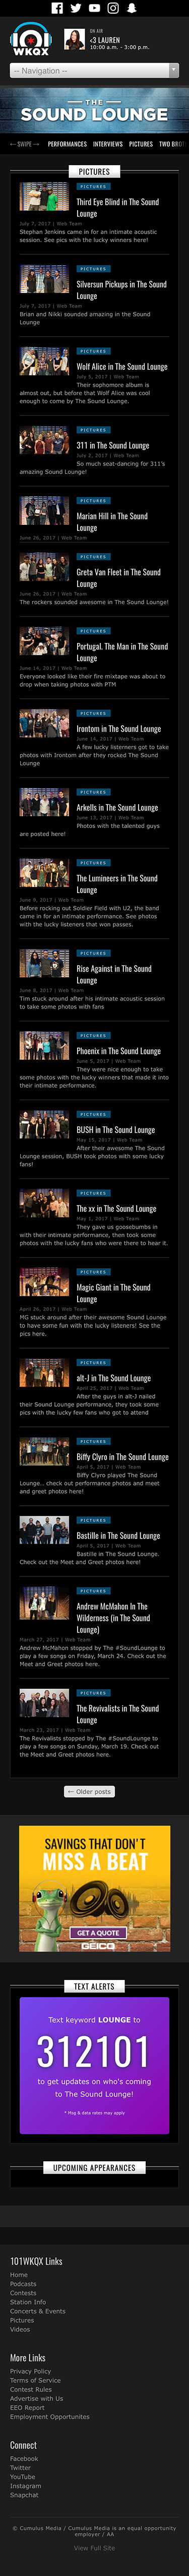 The Sound Lounge - Category Listing - Pictures - iPhone View